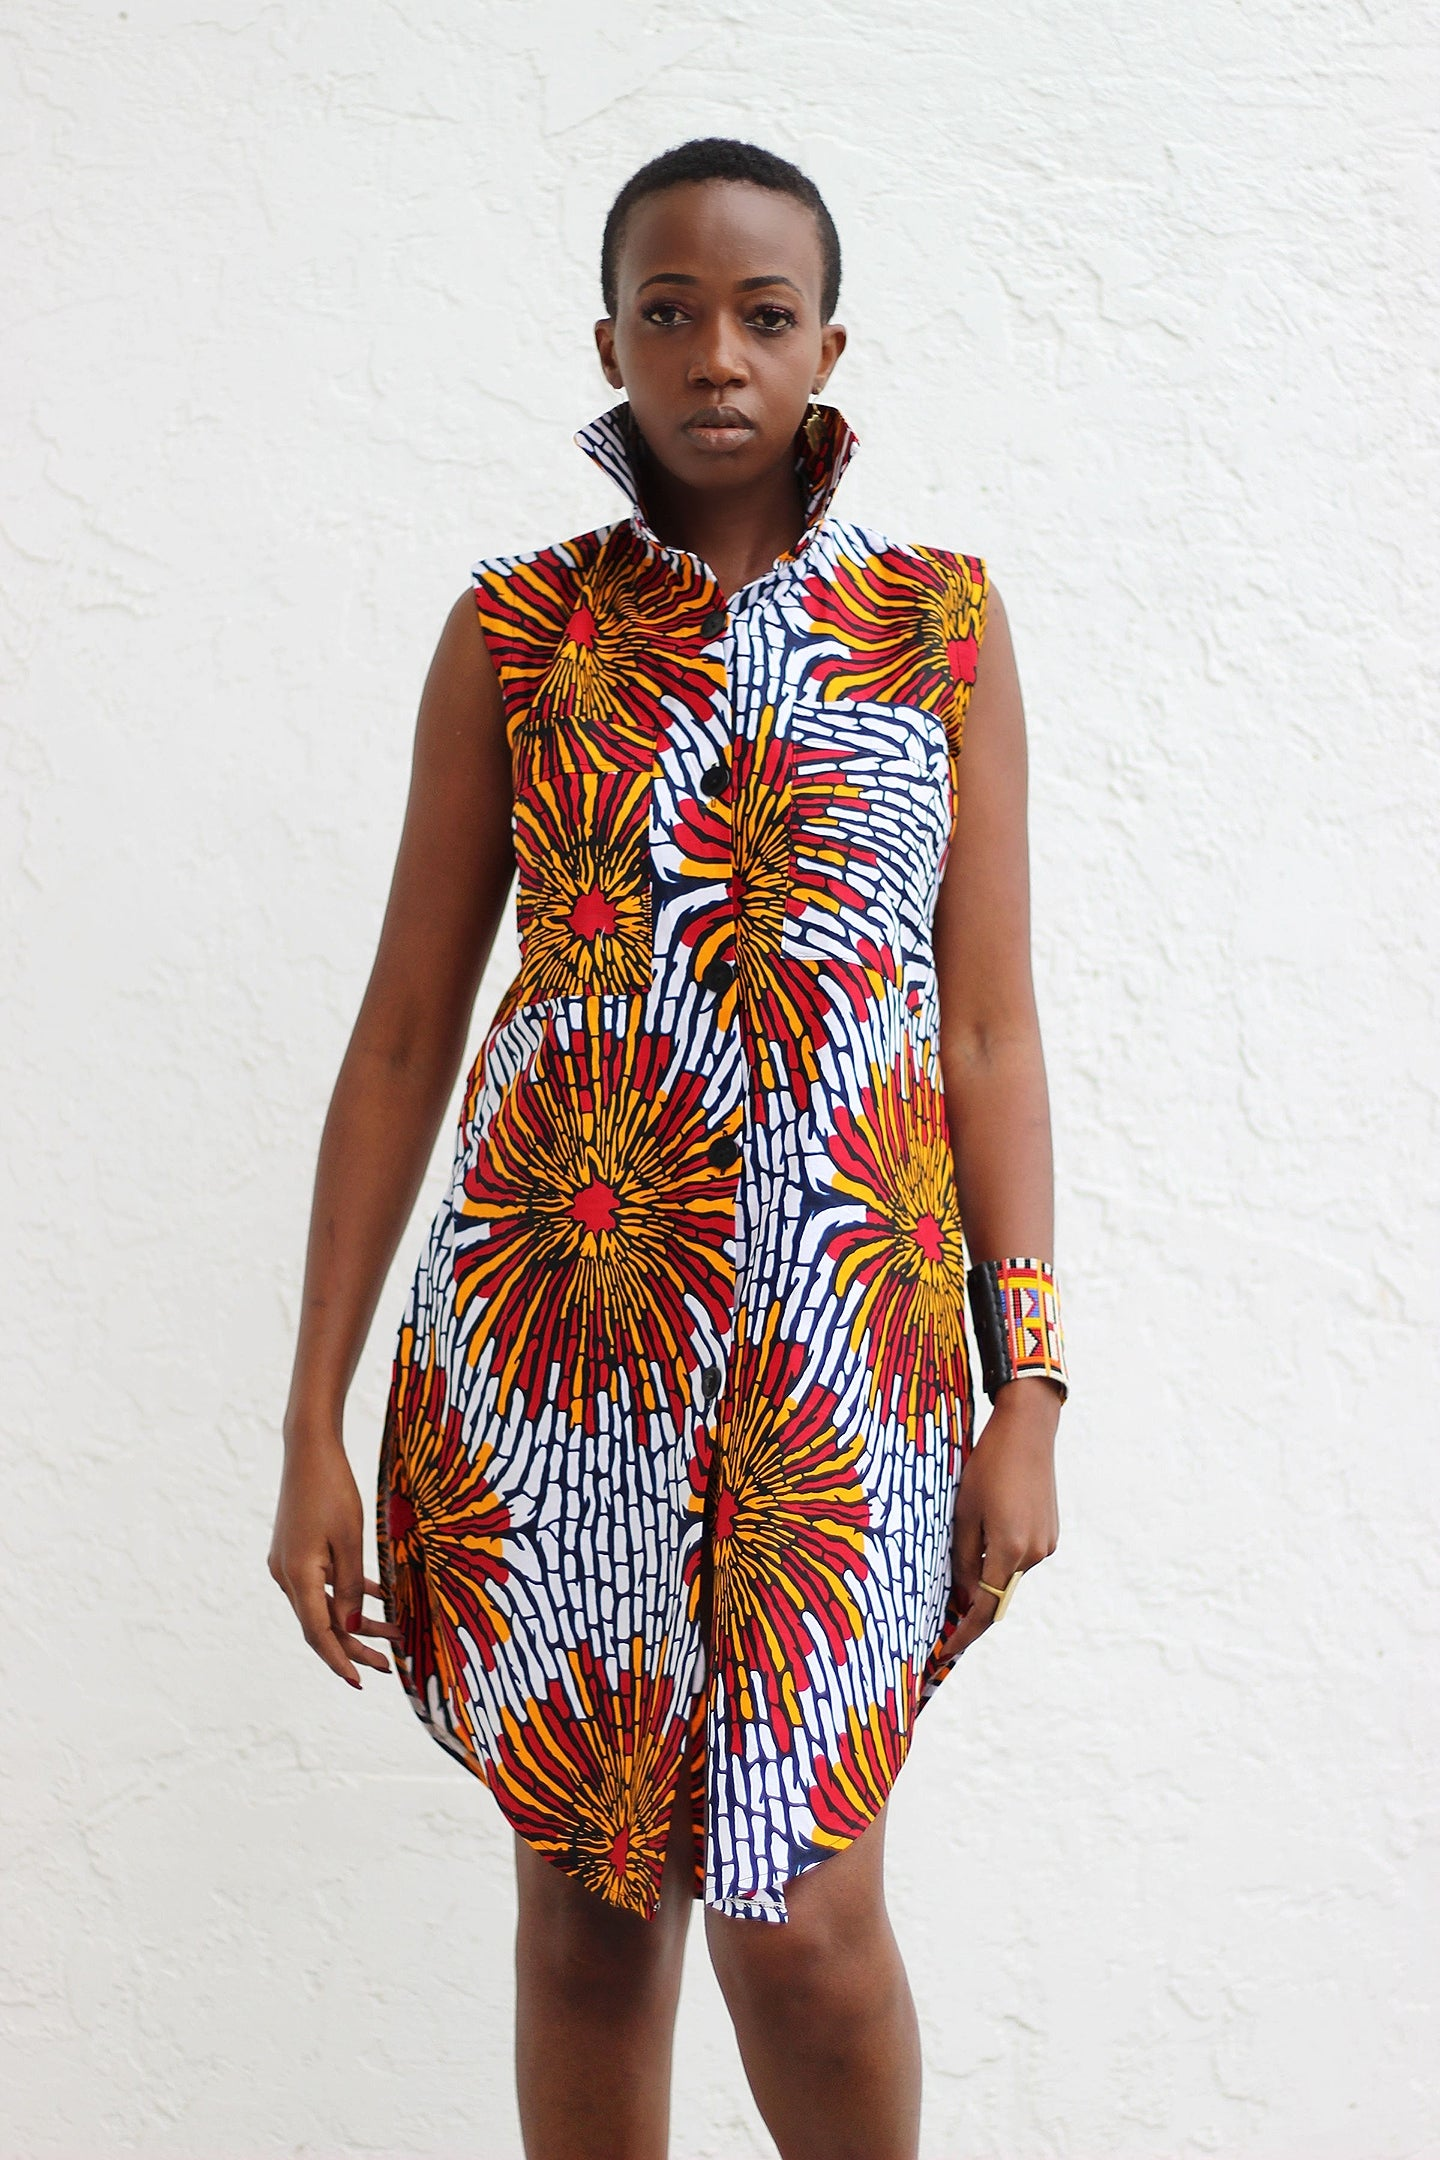 African Print /Ankara /Kitenge Zao Dress Top - White/Red/Orange Floral Print - Africas Closet